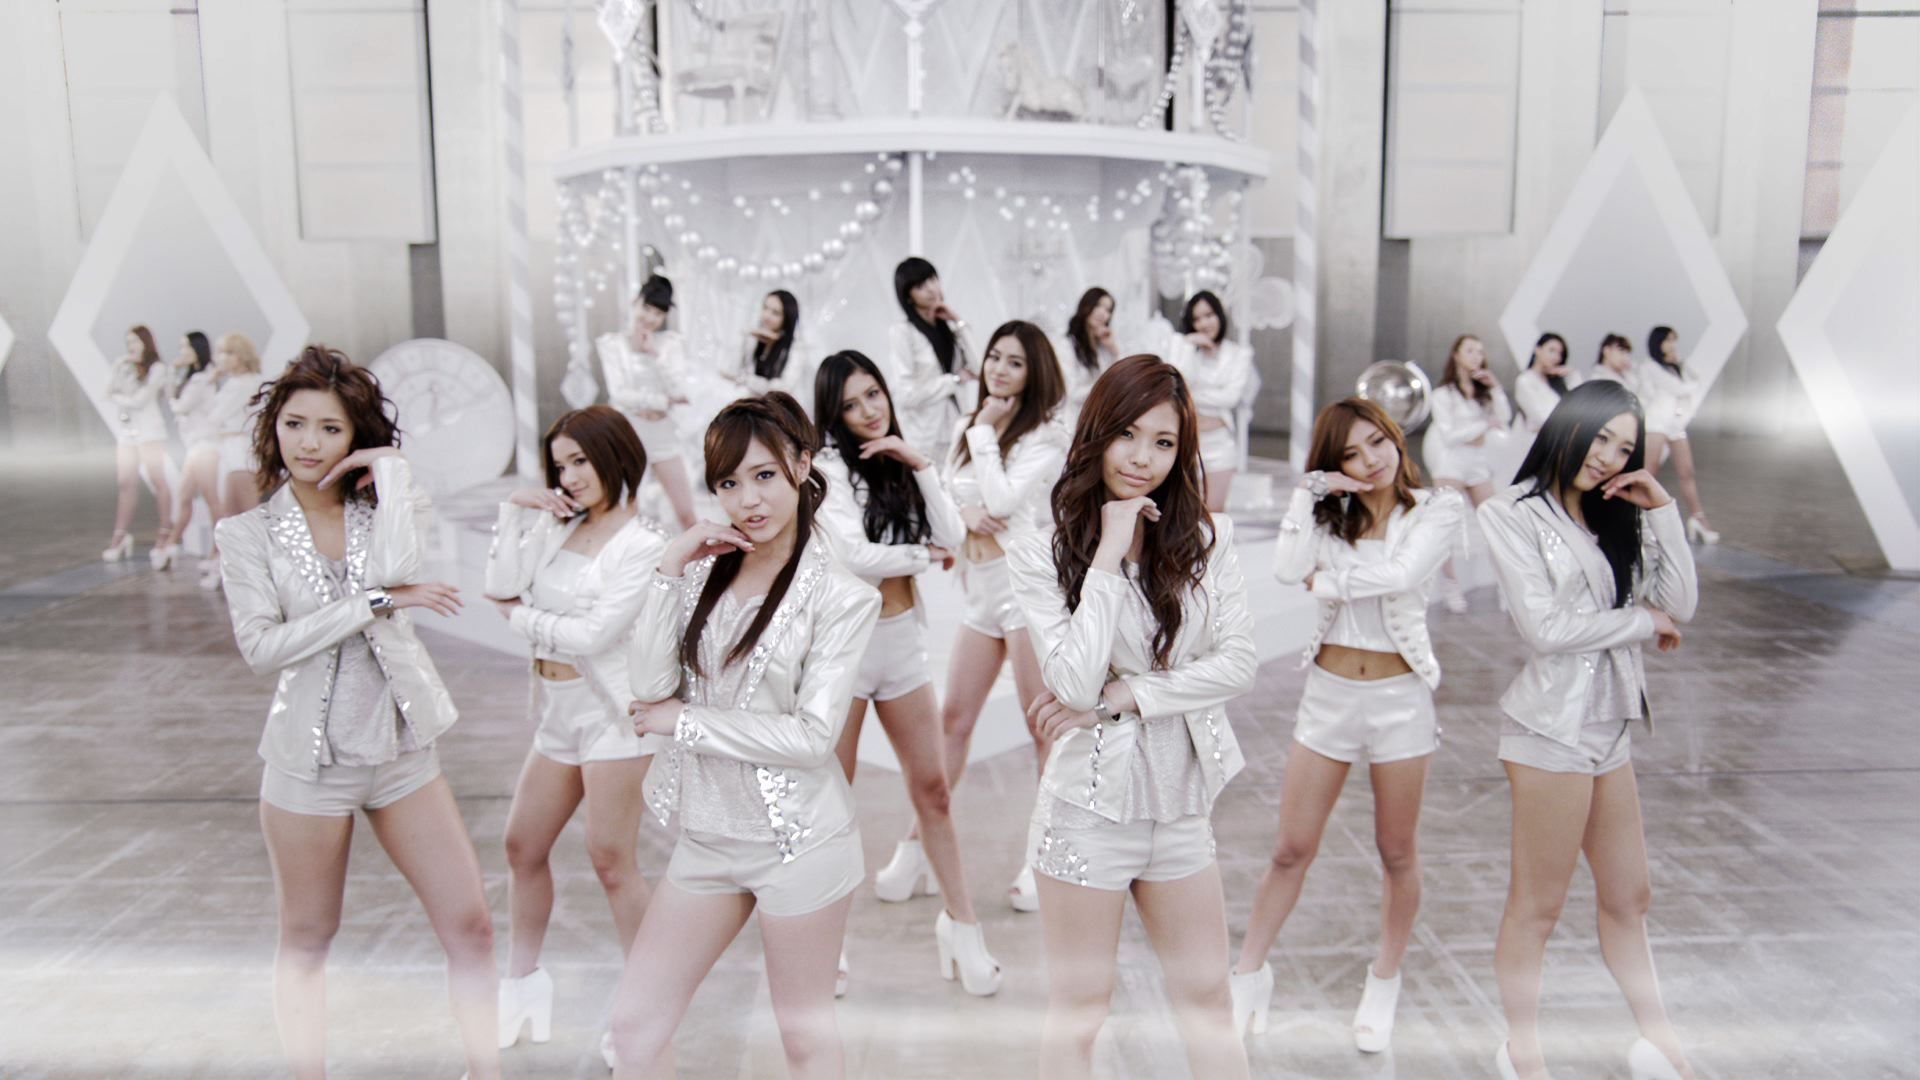 E-Girls images    E-girls HD wallpaper and background photos